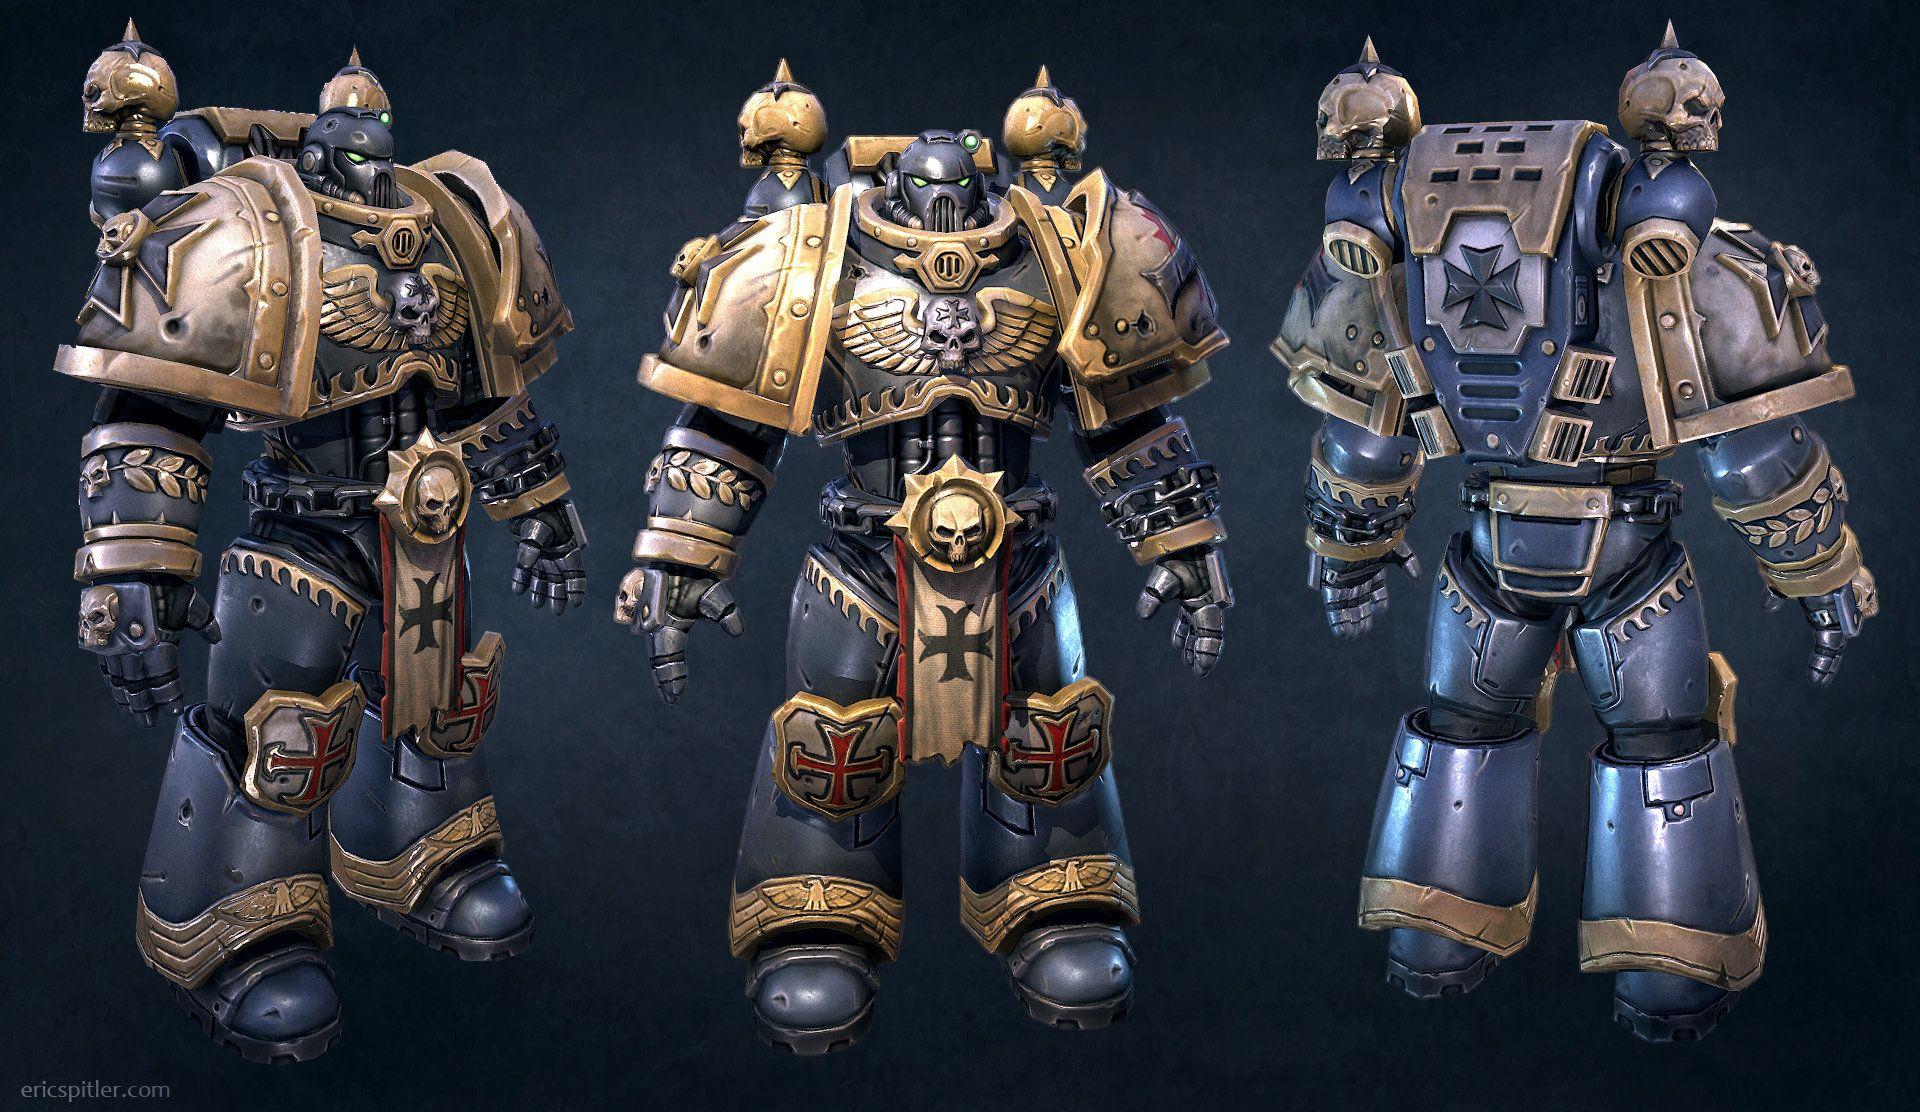 Warhammer 40k Space Marines: Here's Another Space Marine I Did At Vigil Games. The